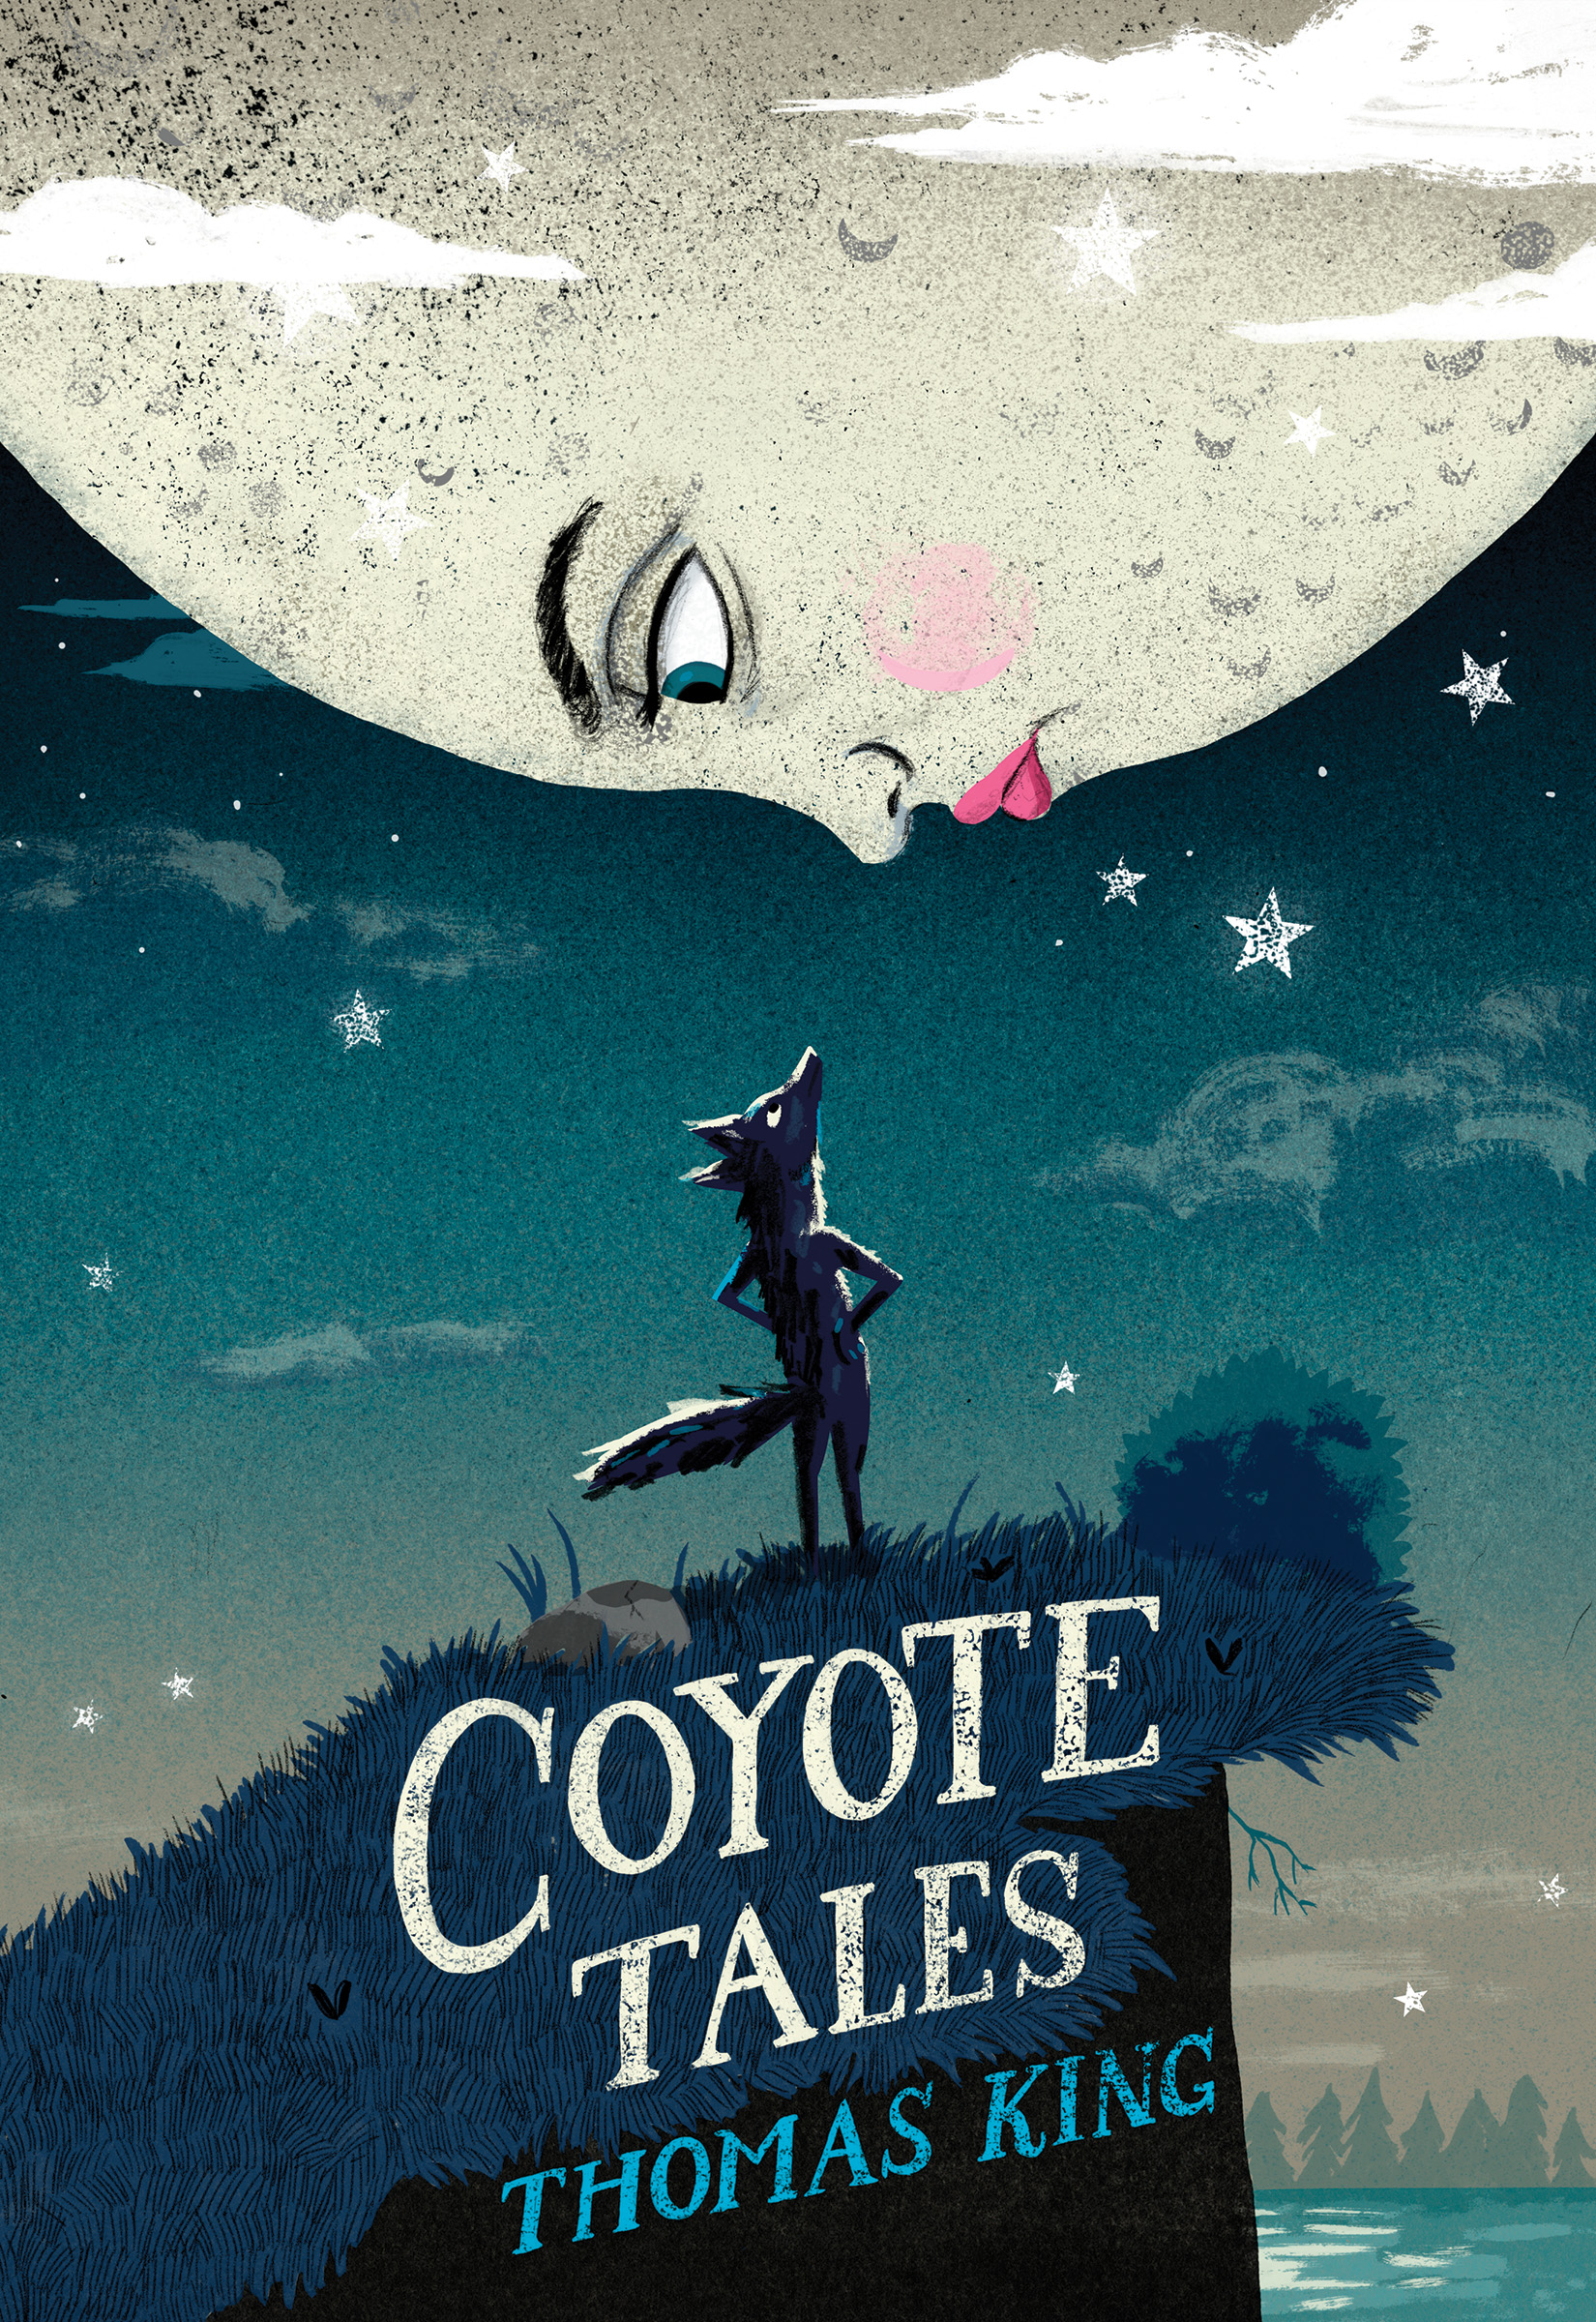 Coyote Tales | 6-8 years old